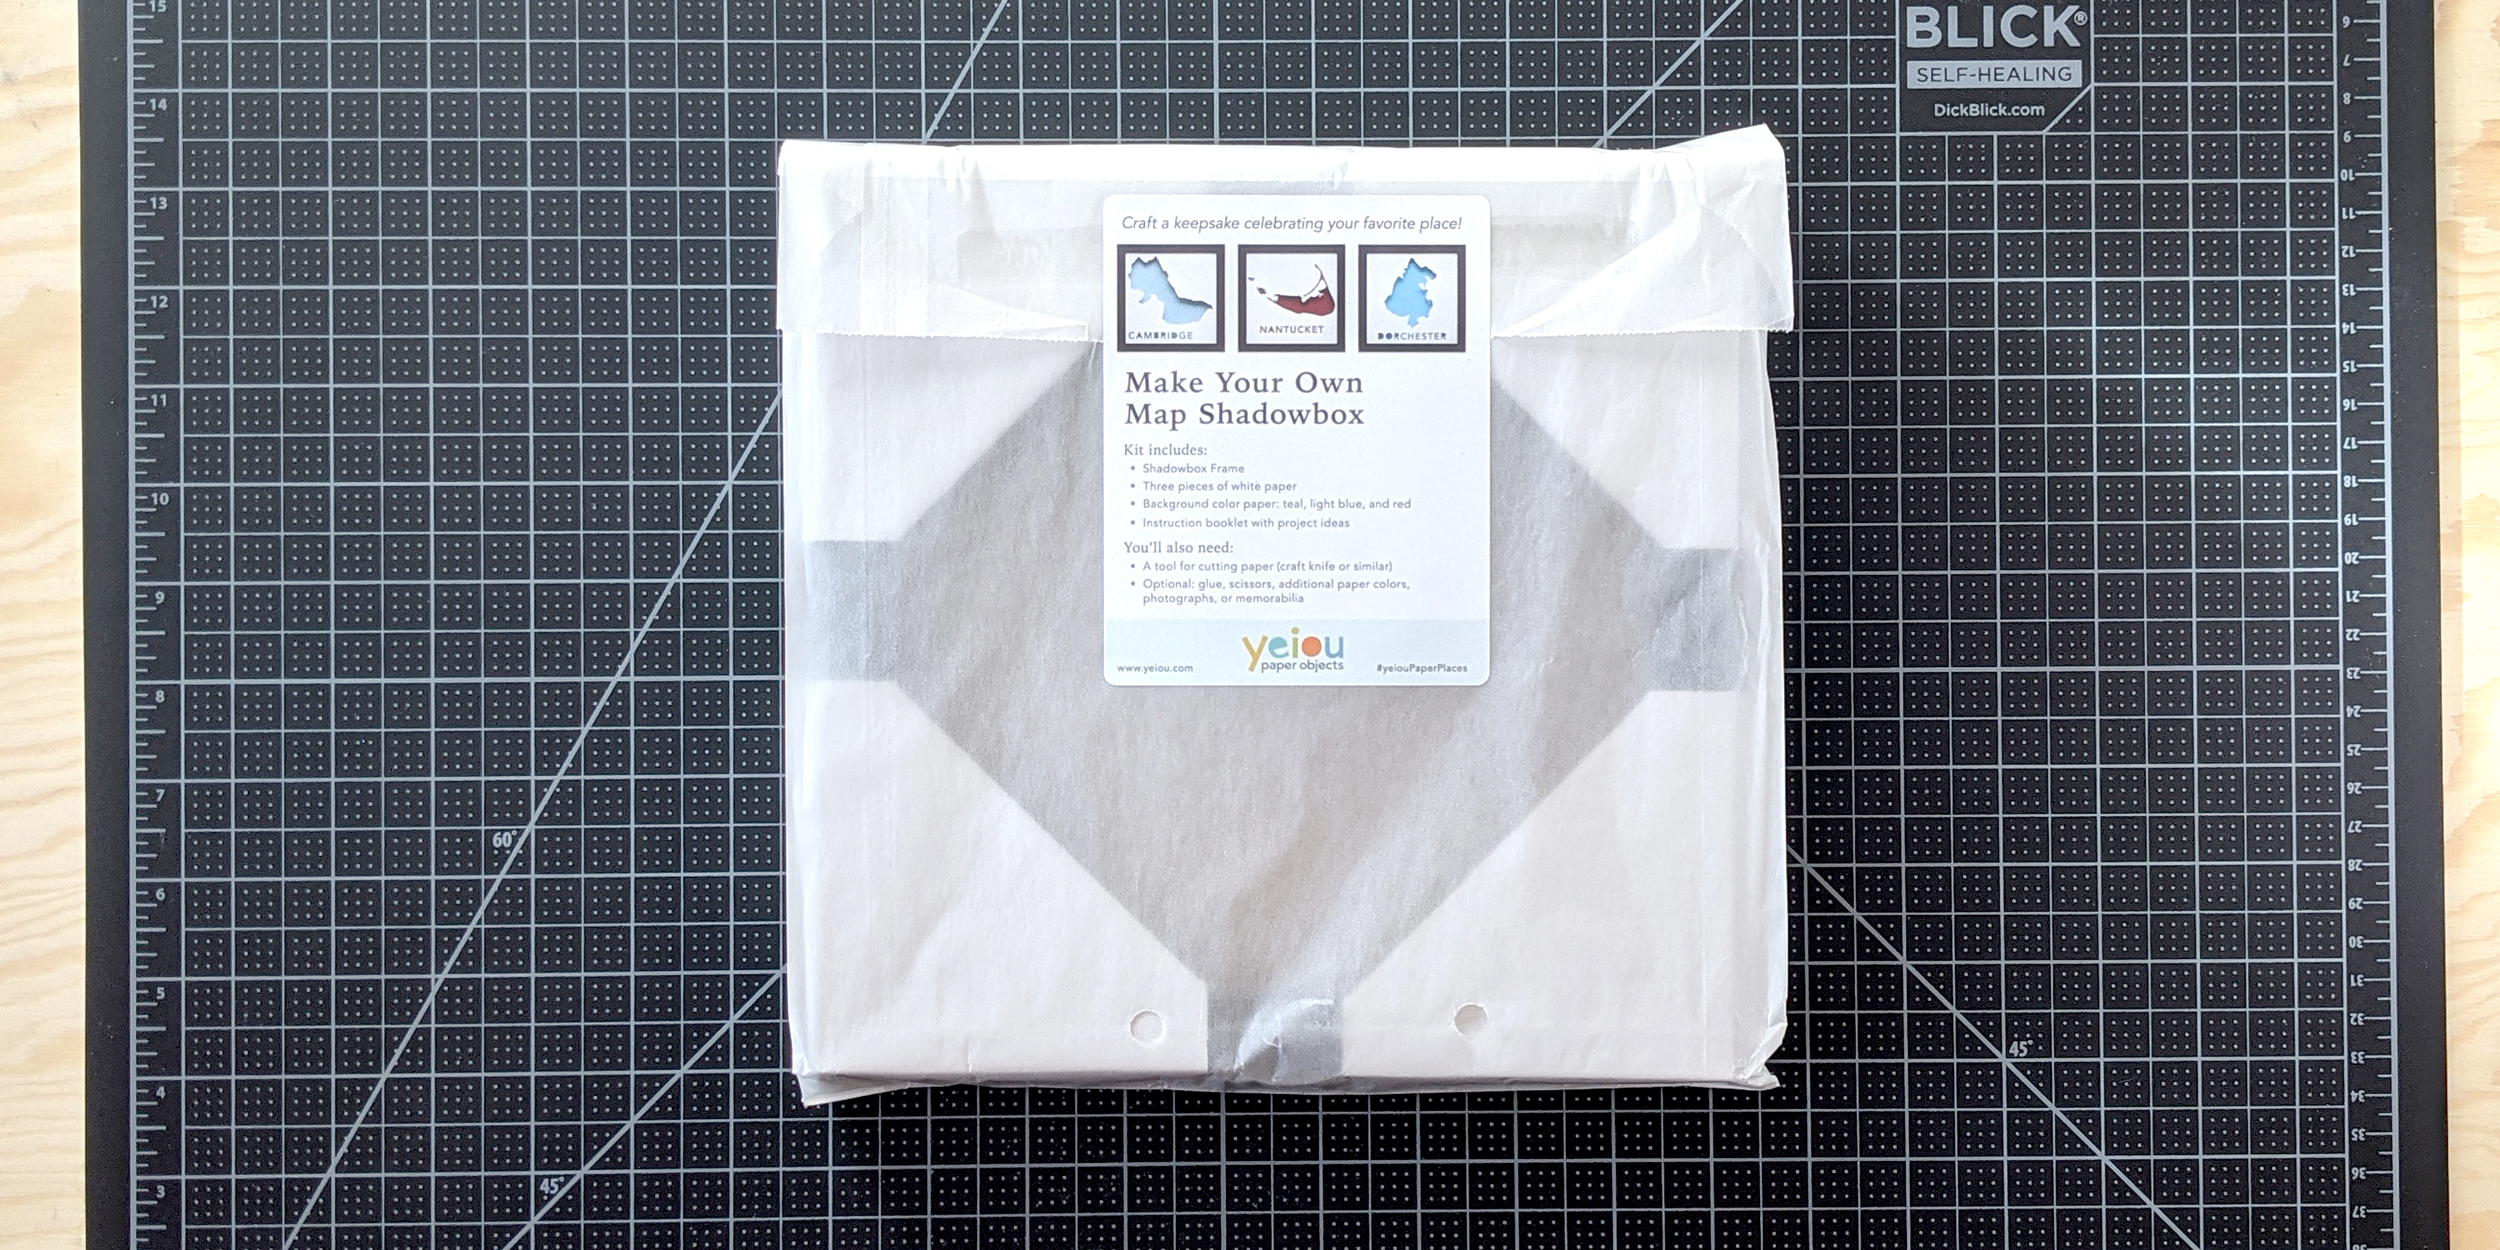 Packaged Make Your Own Paper Place kit on a desk